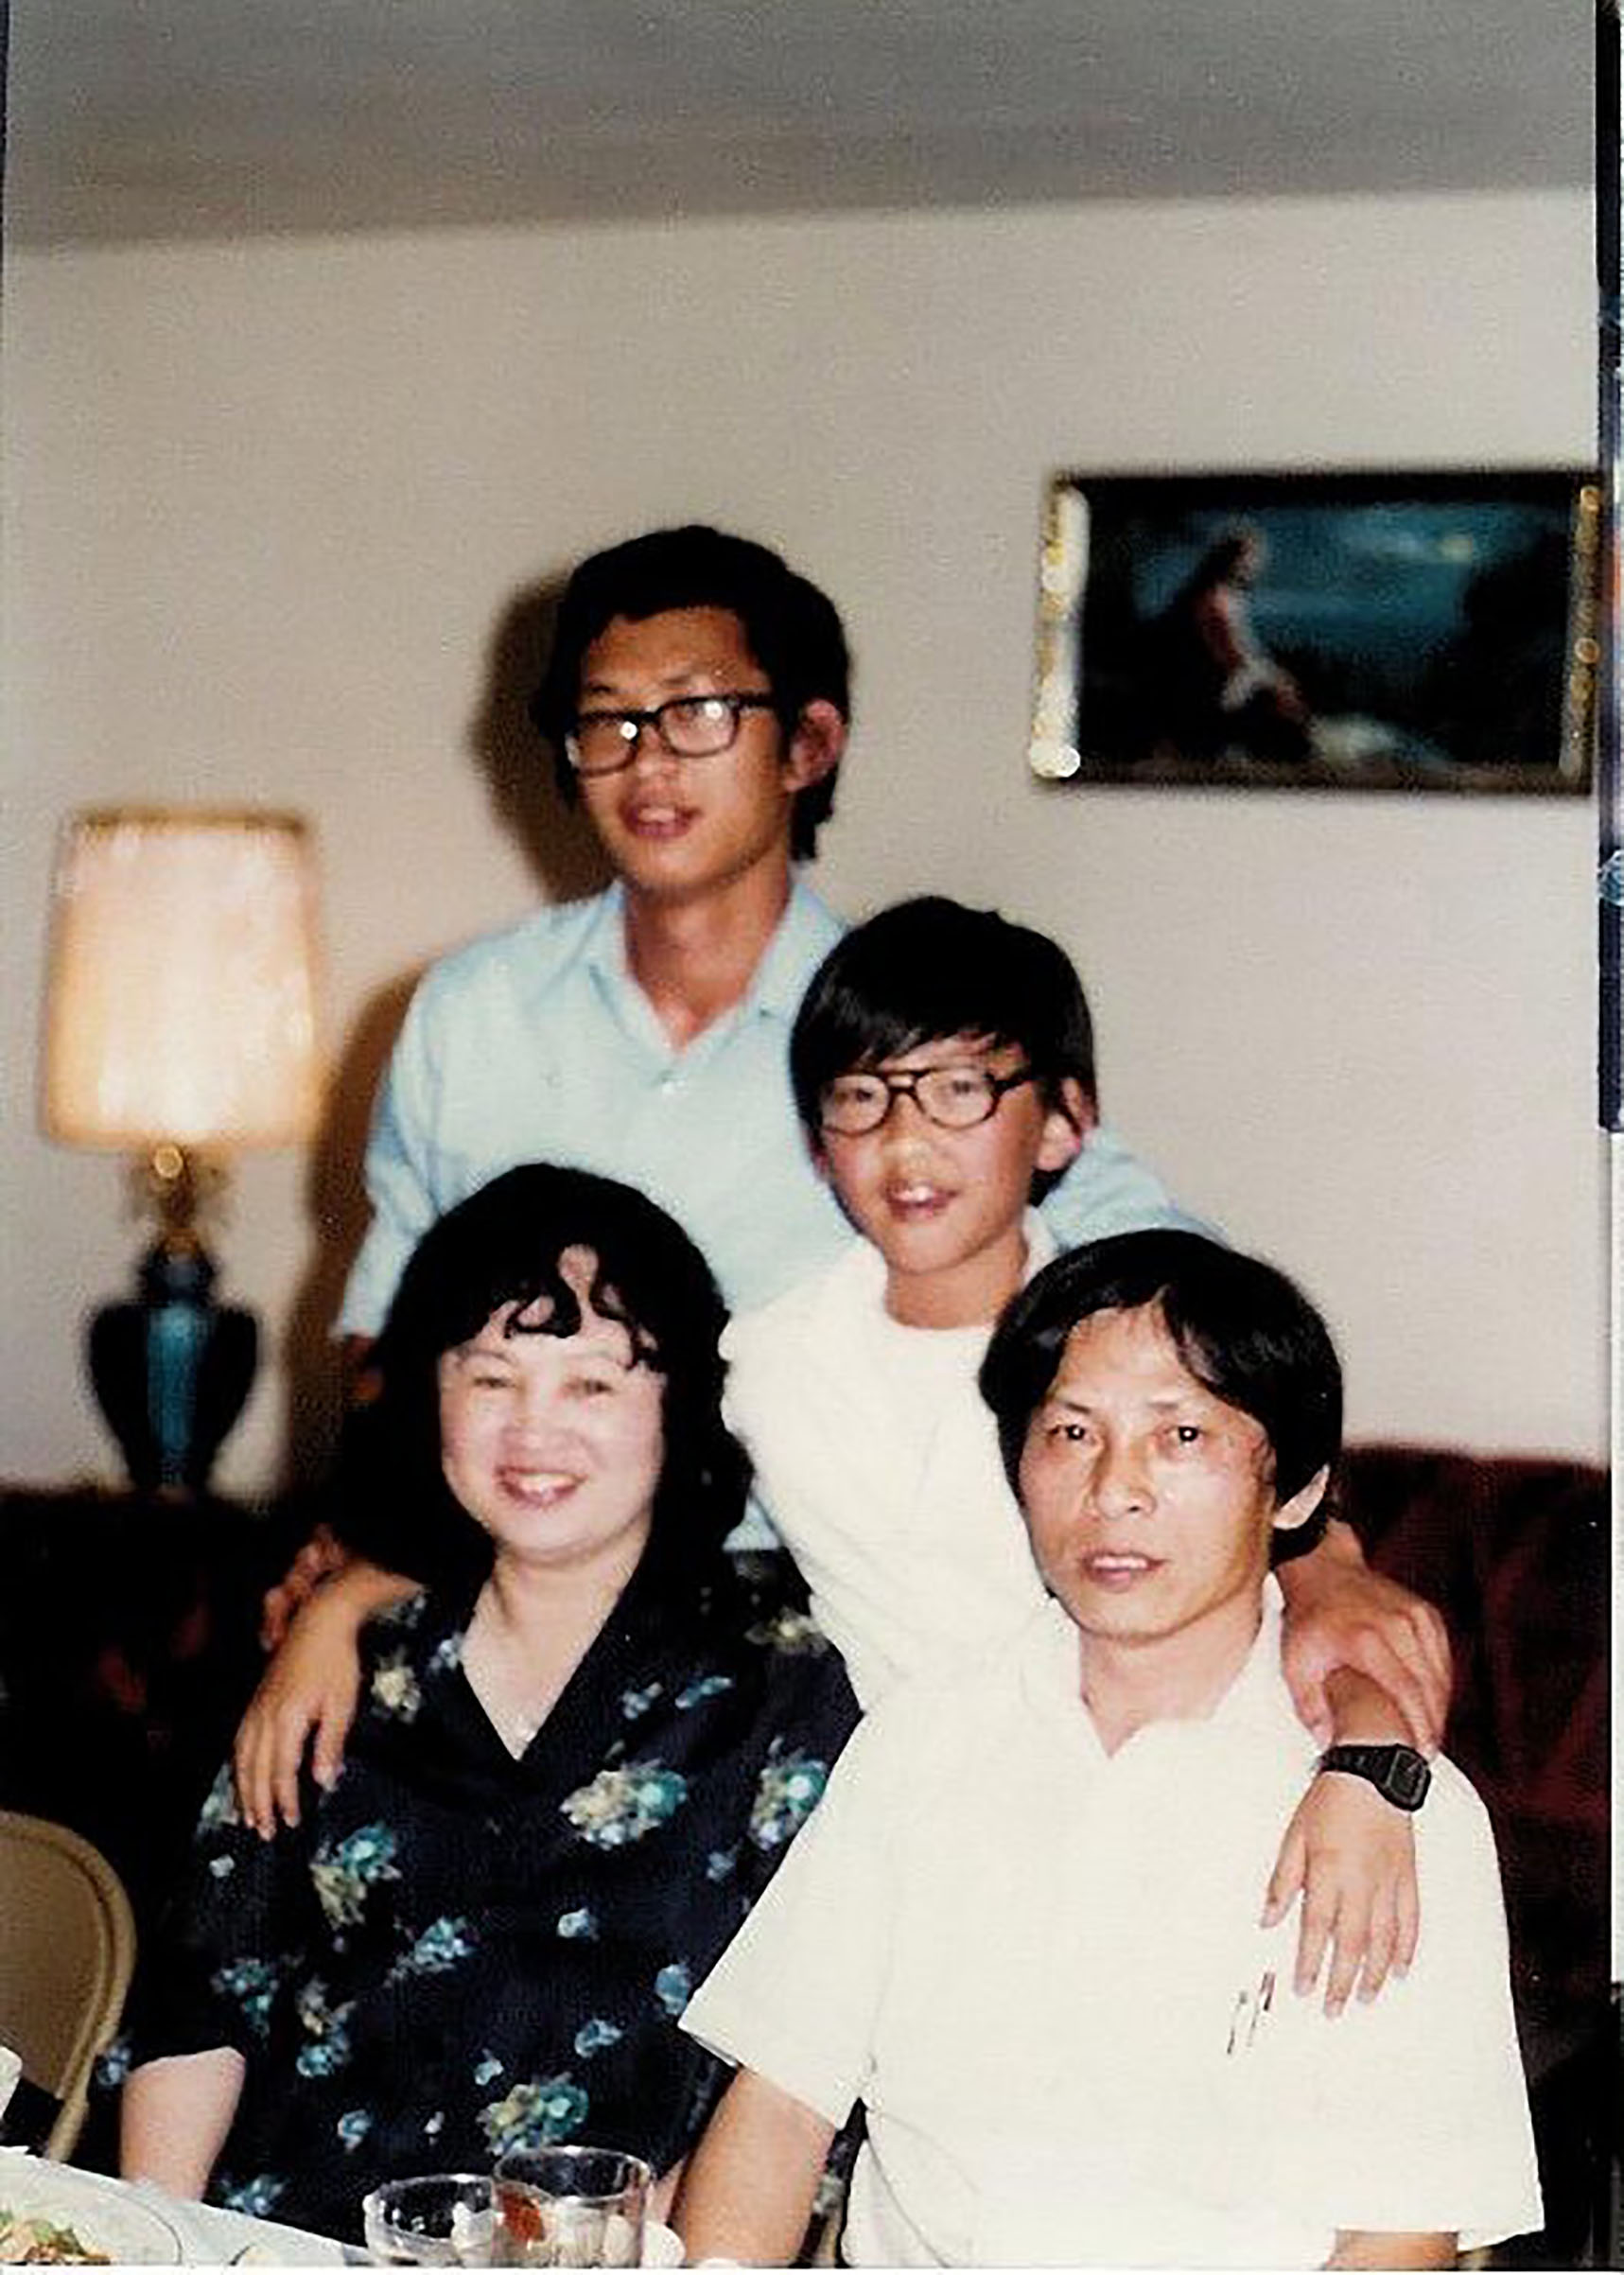 The Nguyen family, in the early 1980s in San Jose, Calif., where his parents owned the New Saigon Mini Market